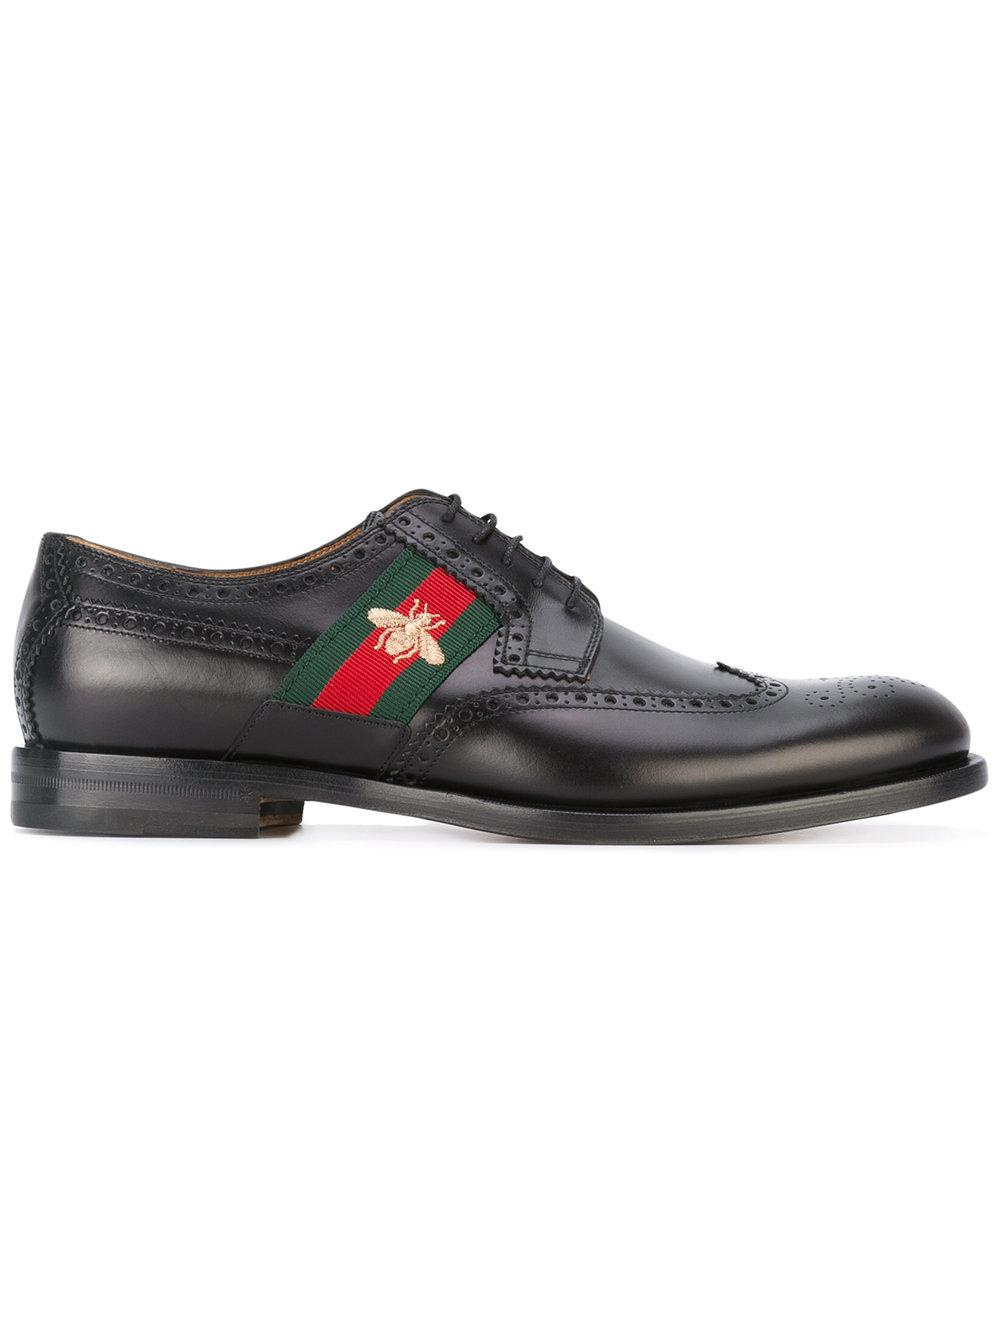 Gucci Leather Bee Embroidery Derby Shoes in Black for Men